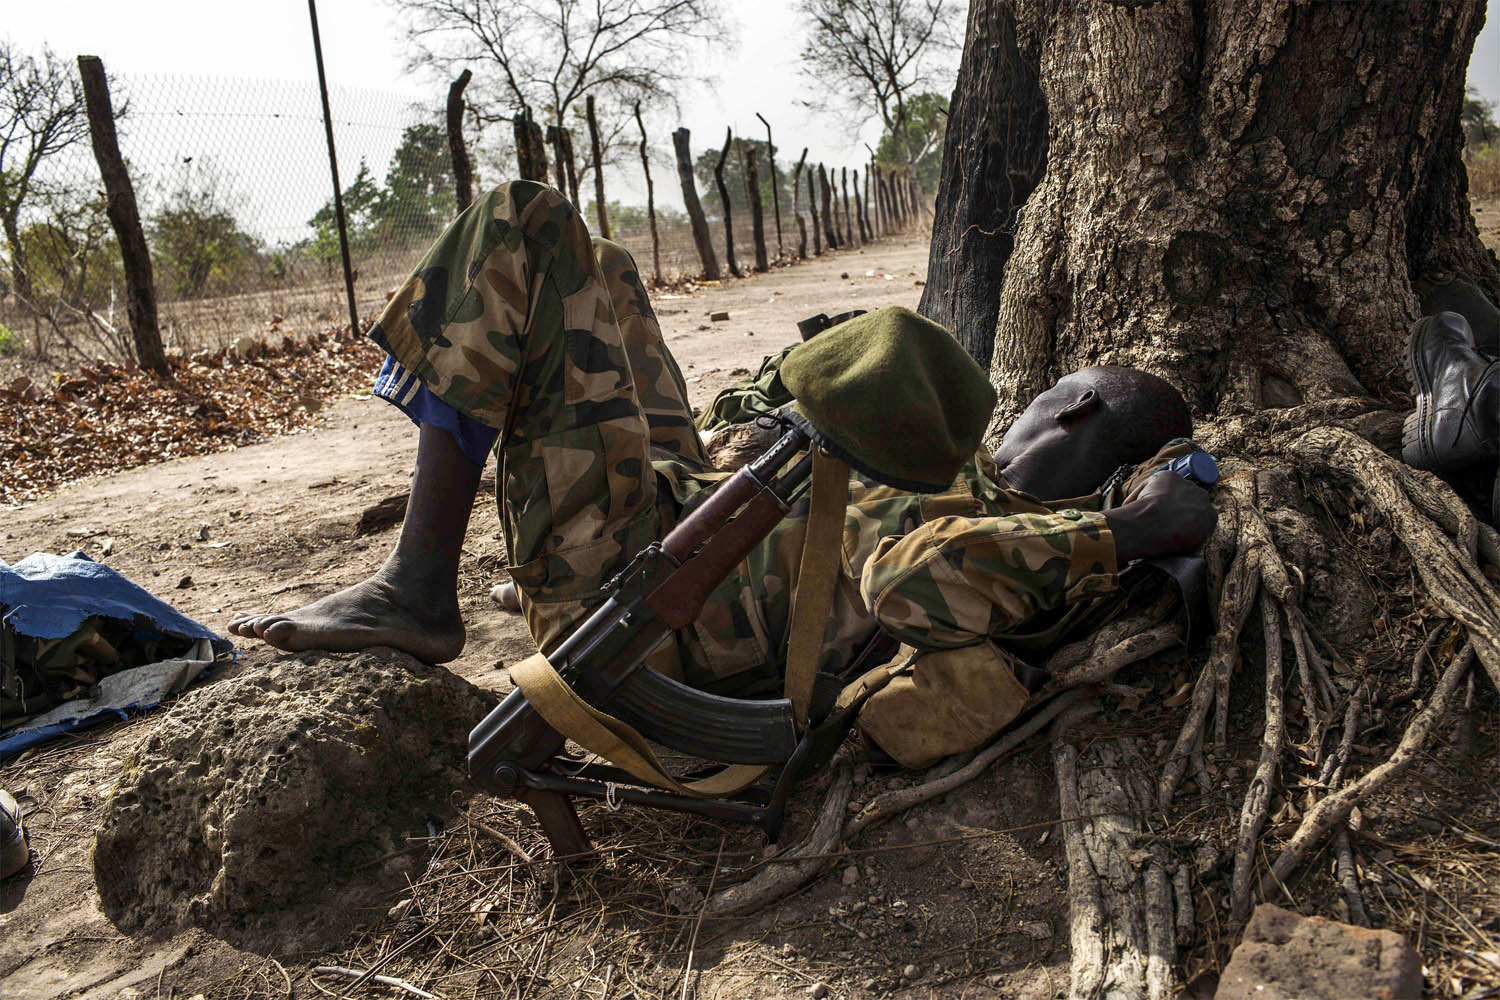 Feb. 15, 2014. A Sudan People's Liberation Army (SPLA) government soldier from the 2nd Battalion rests under a tree at the SPLA headquarters in Nyang, in the county of Yirol East, South Sudan.